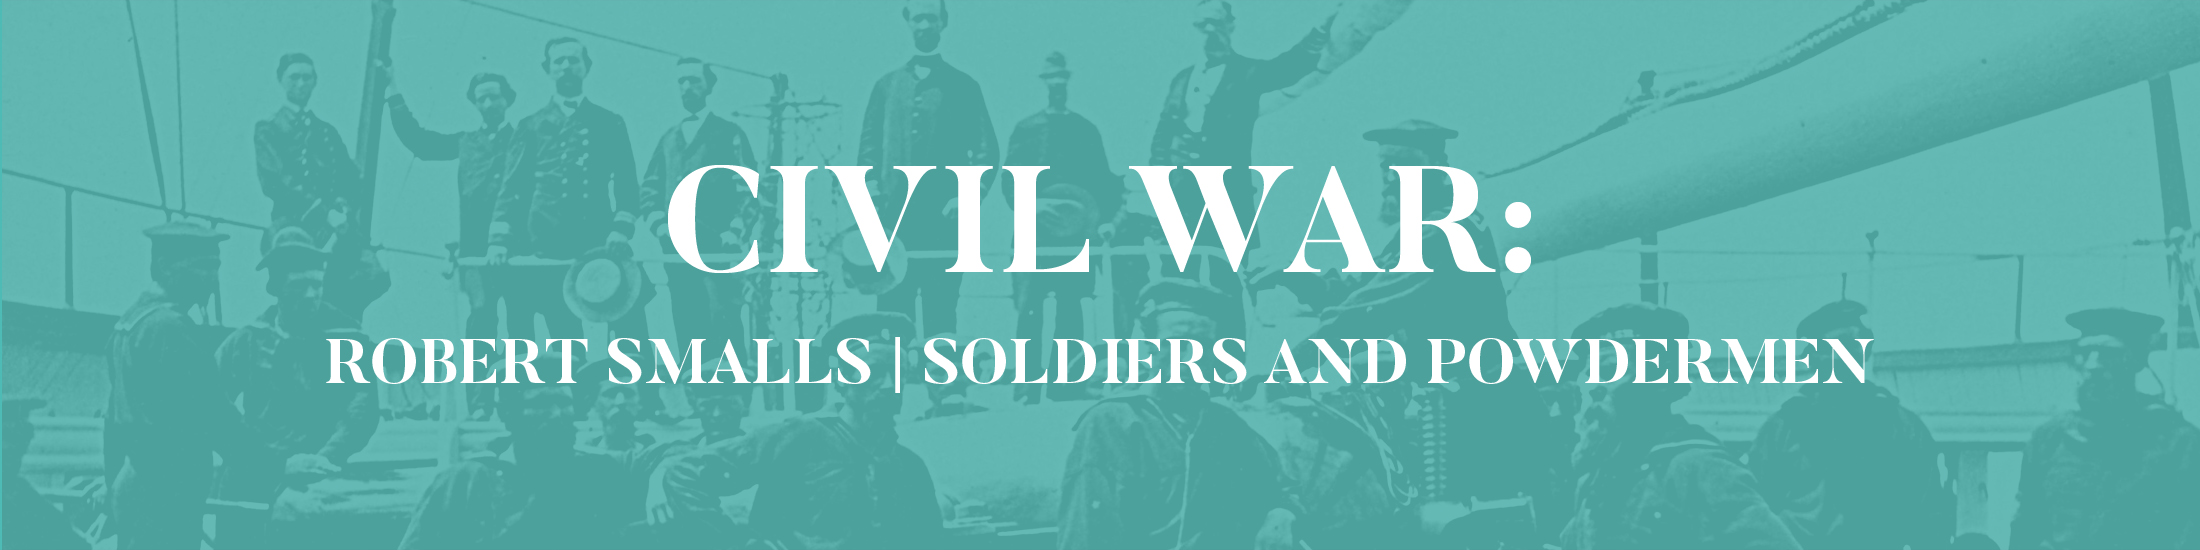 Civil War: Robert Smalls, soldiers and powdermen